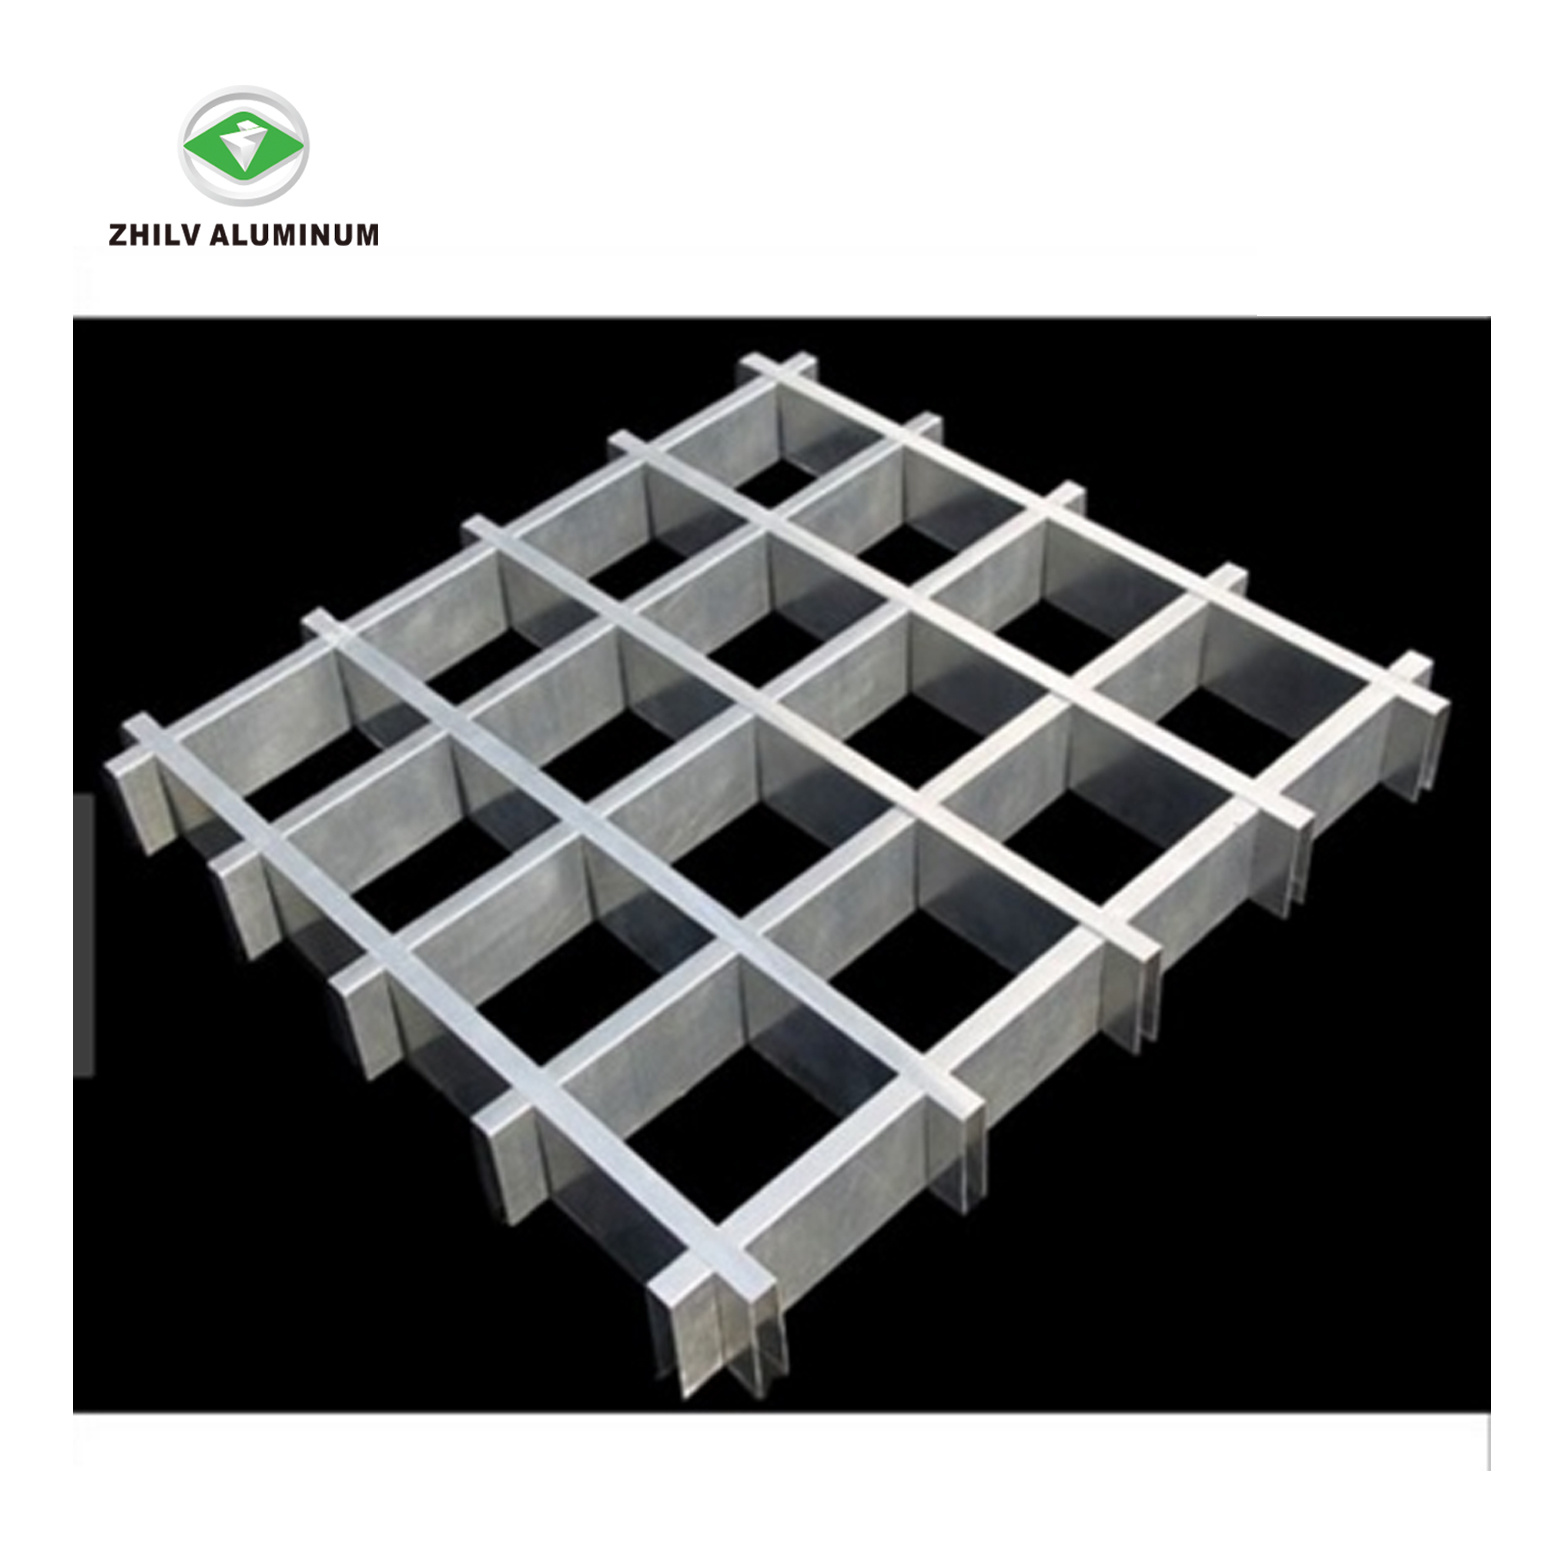 China Aluminum Open Cell Grid Ceiling Tiles For Supermarket Photos